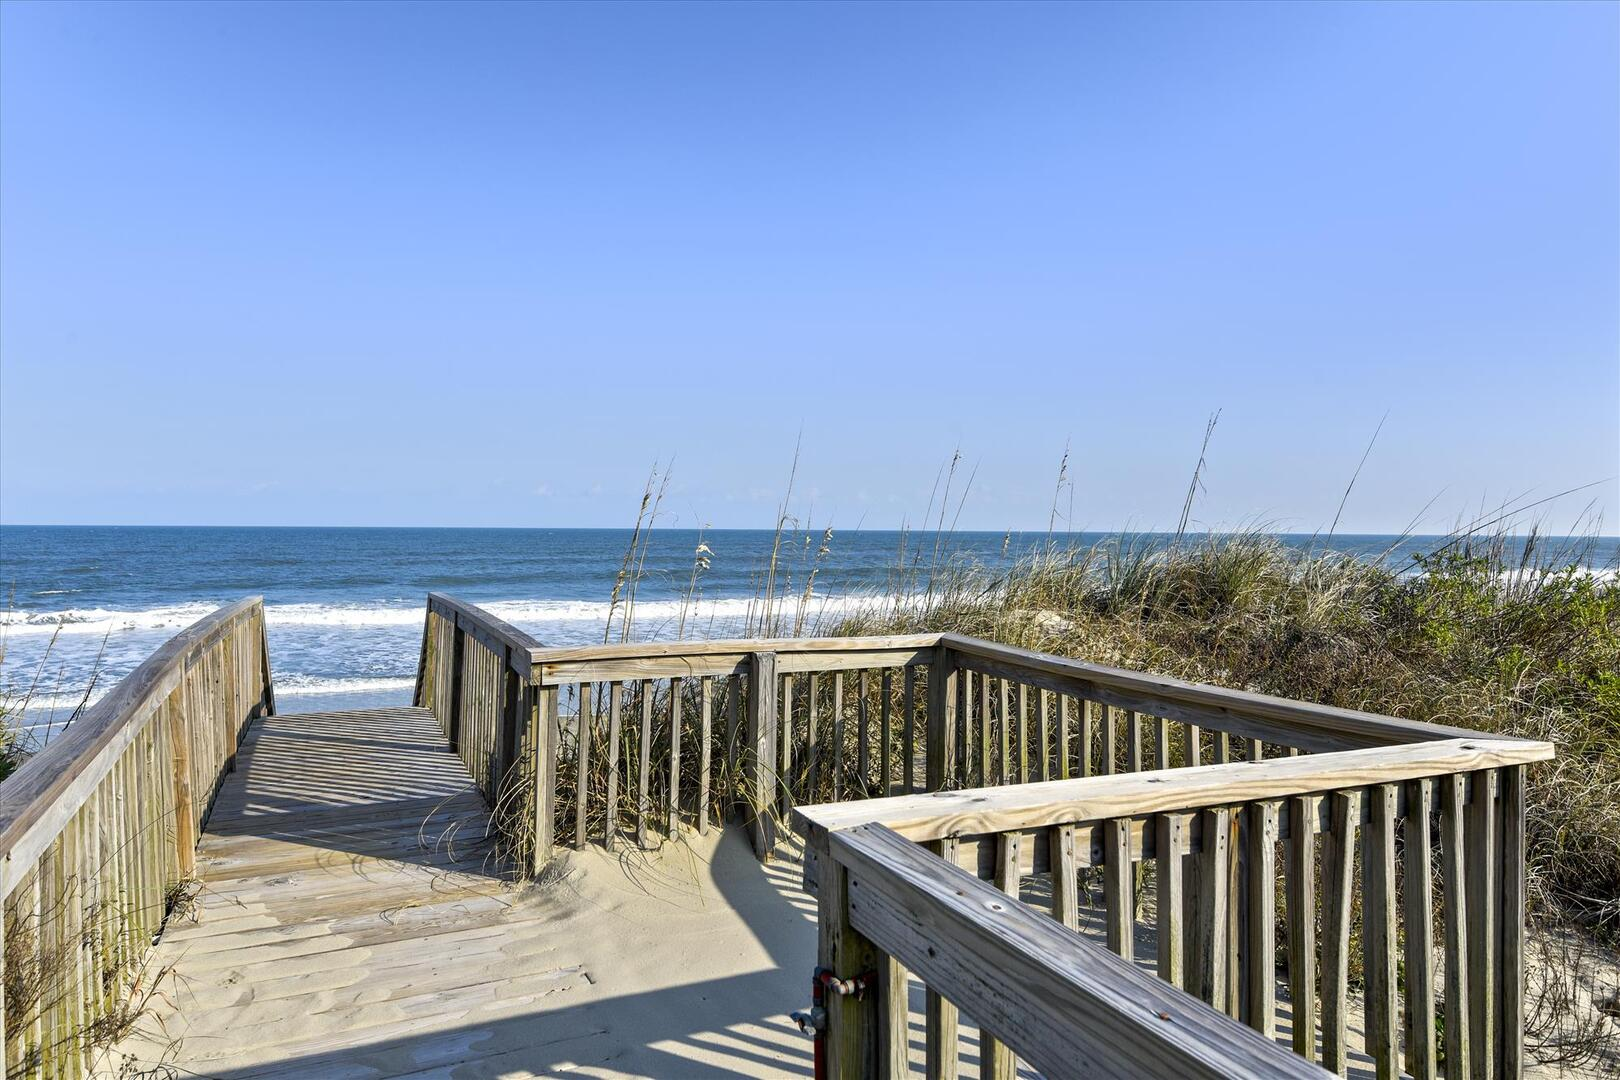 Middle/Pool Level,Beach Deck,